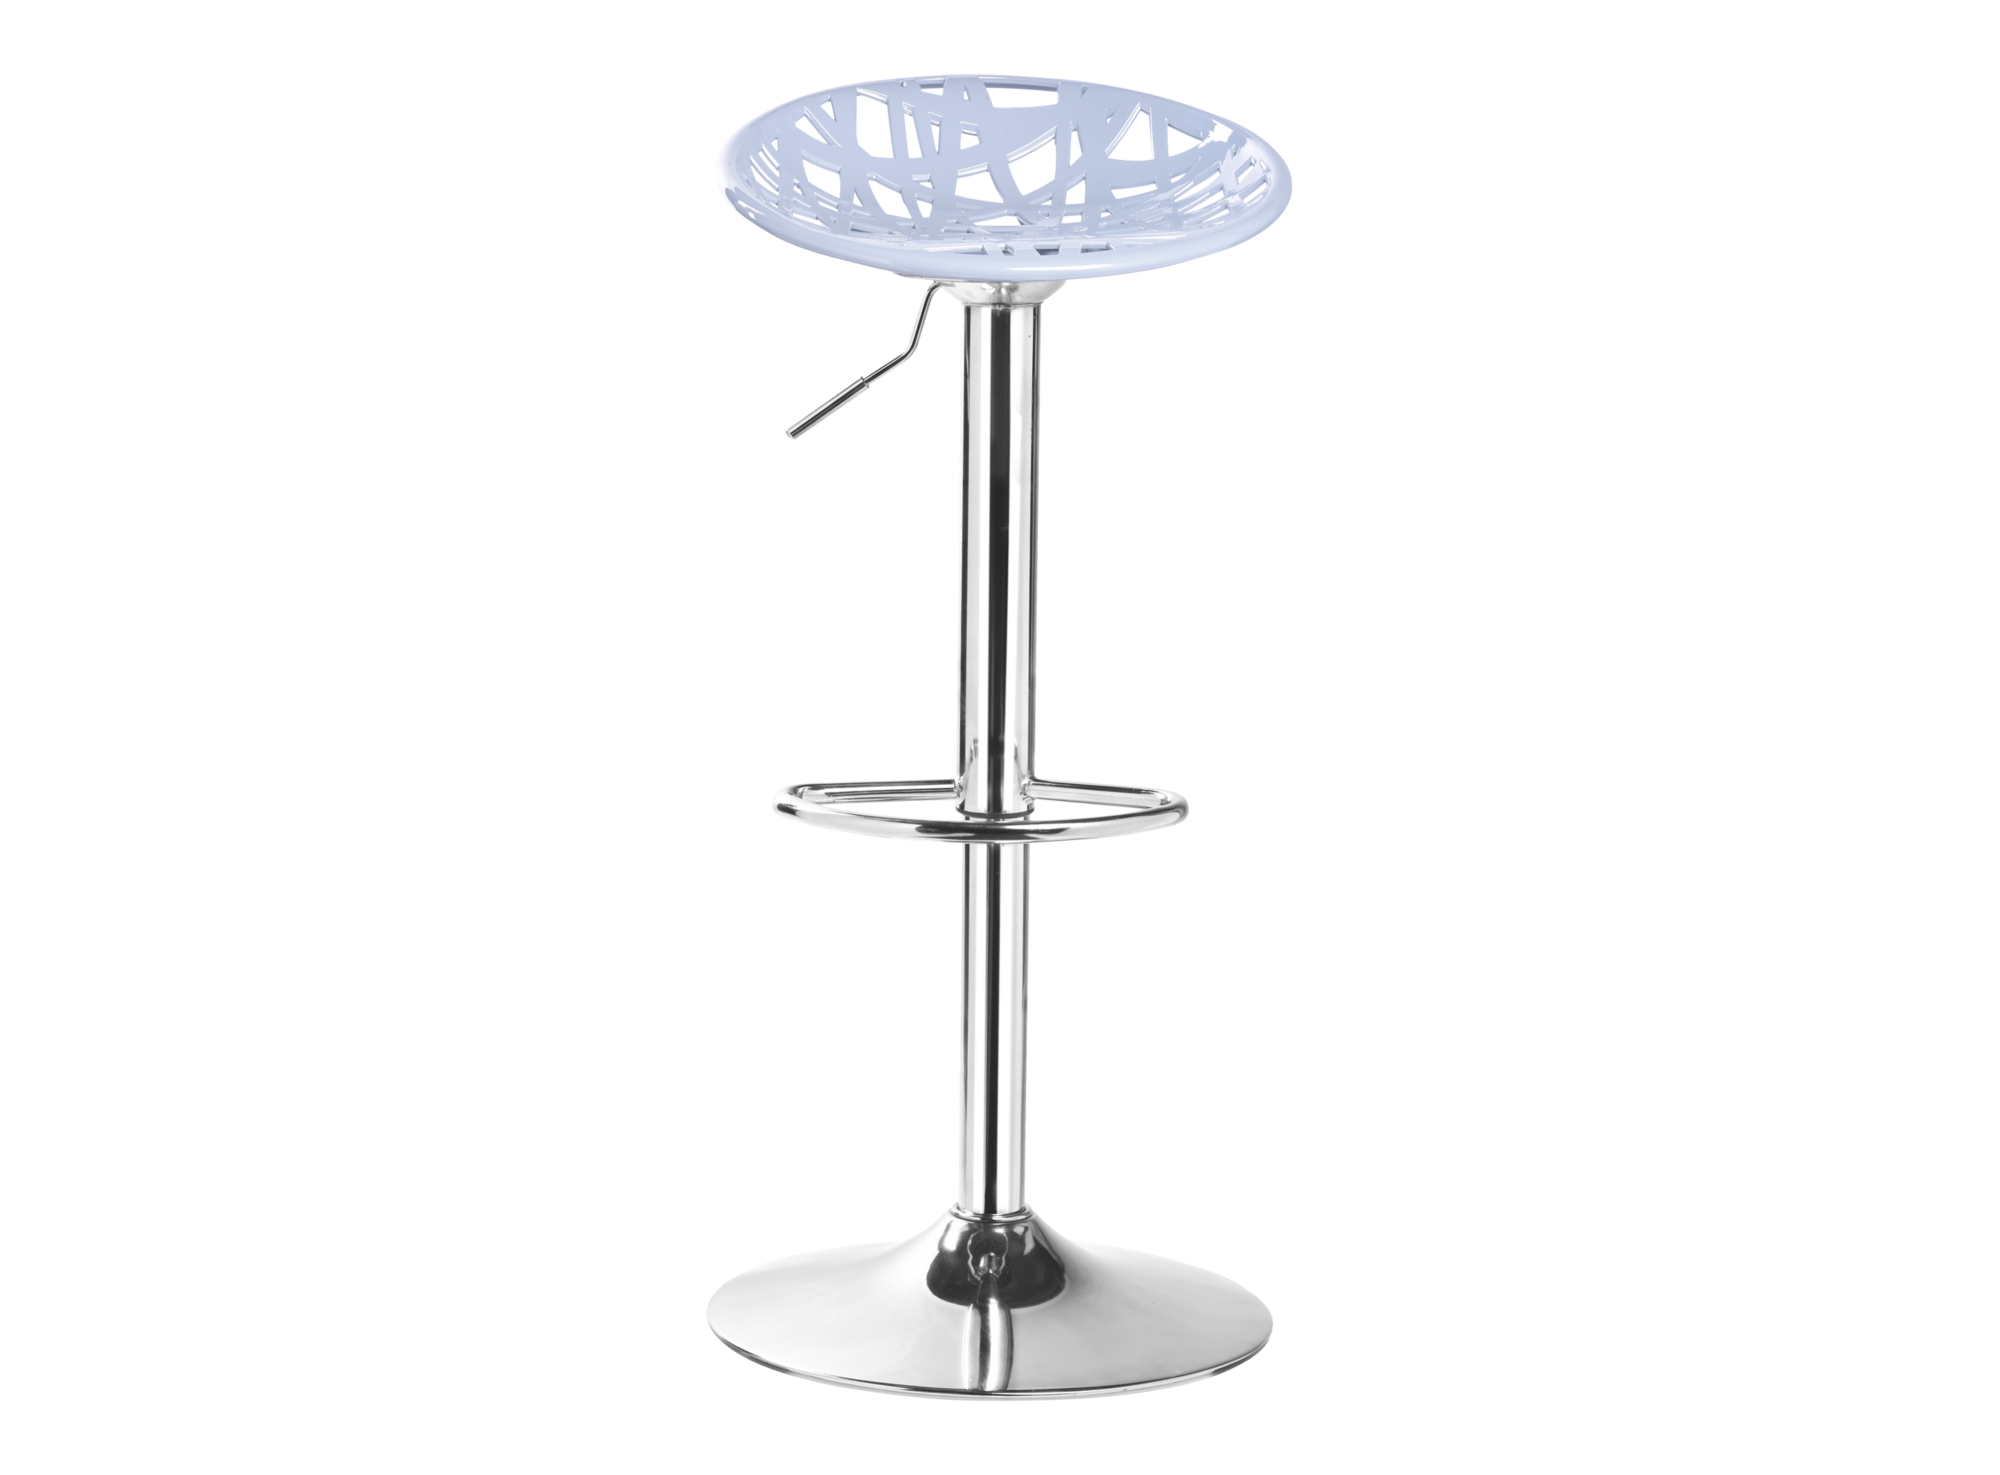 tabouret de bar transparent tabouret de bar transparent fashion designs tabouret transparent. Black Bedroom Furniture Sets. Home Design Ideas